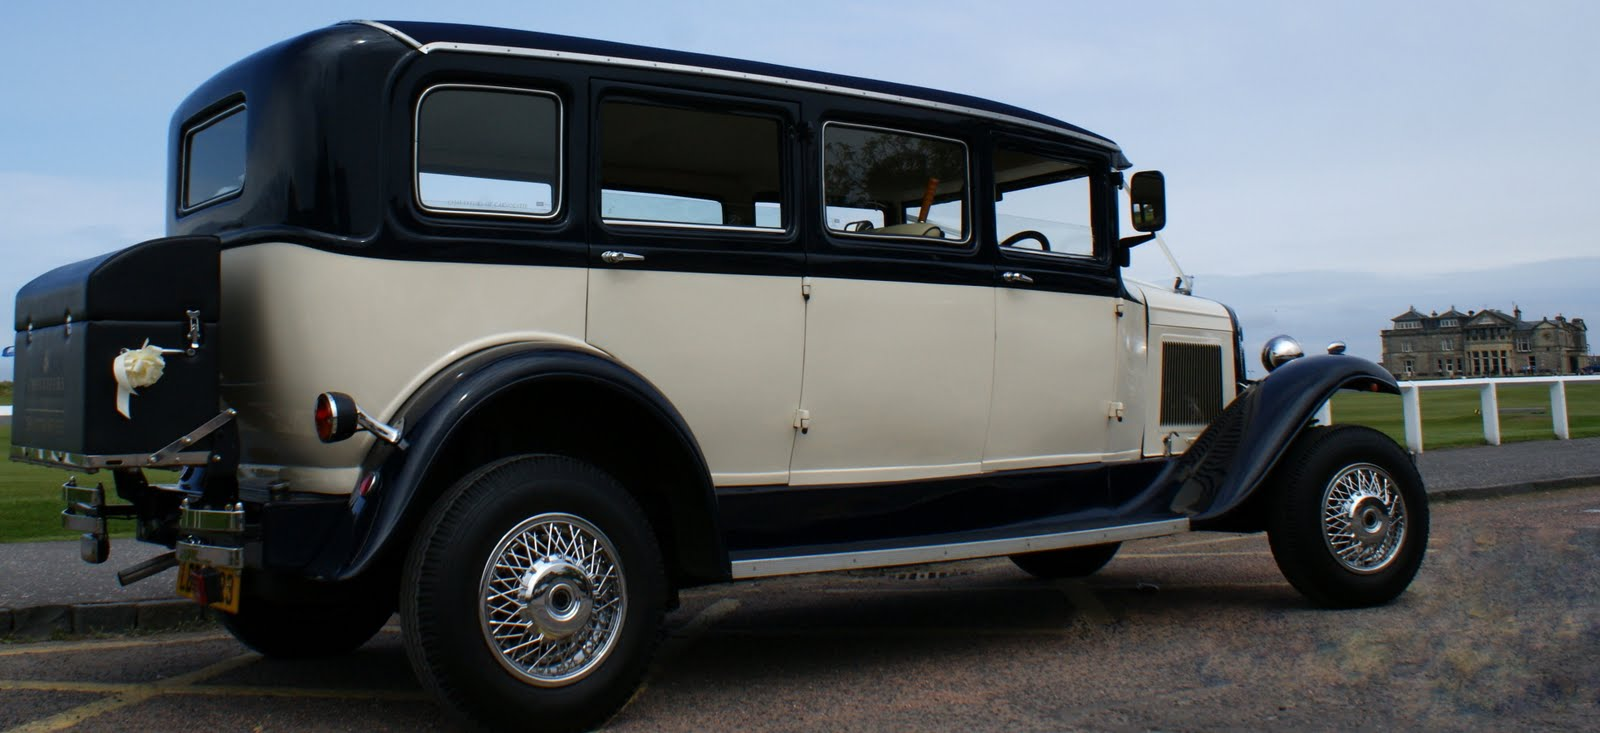 Tour Scotland Photograph Of A Wedding Car By The 18th Fairway At Old Course St Andrews Fife